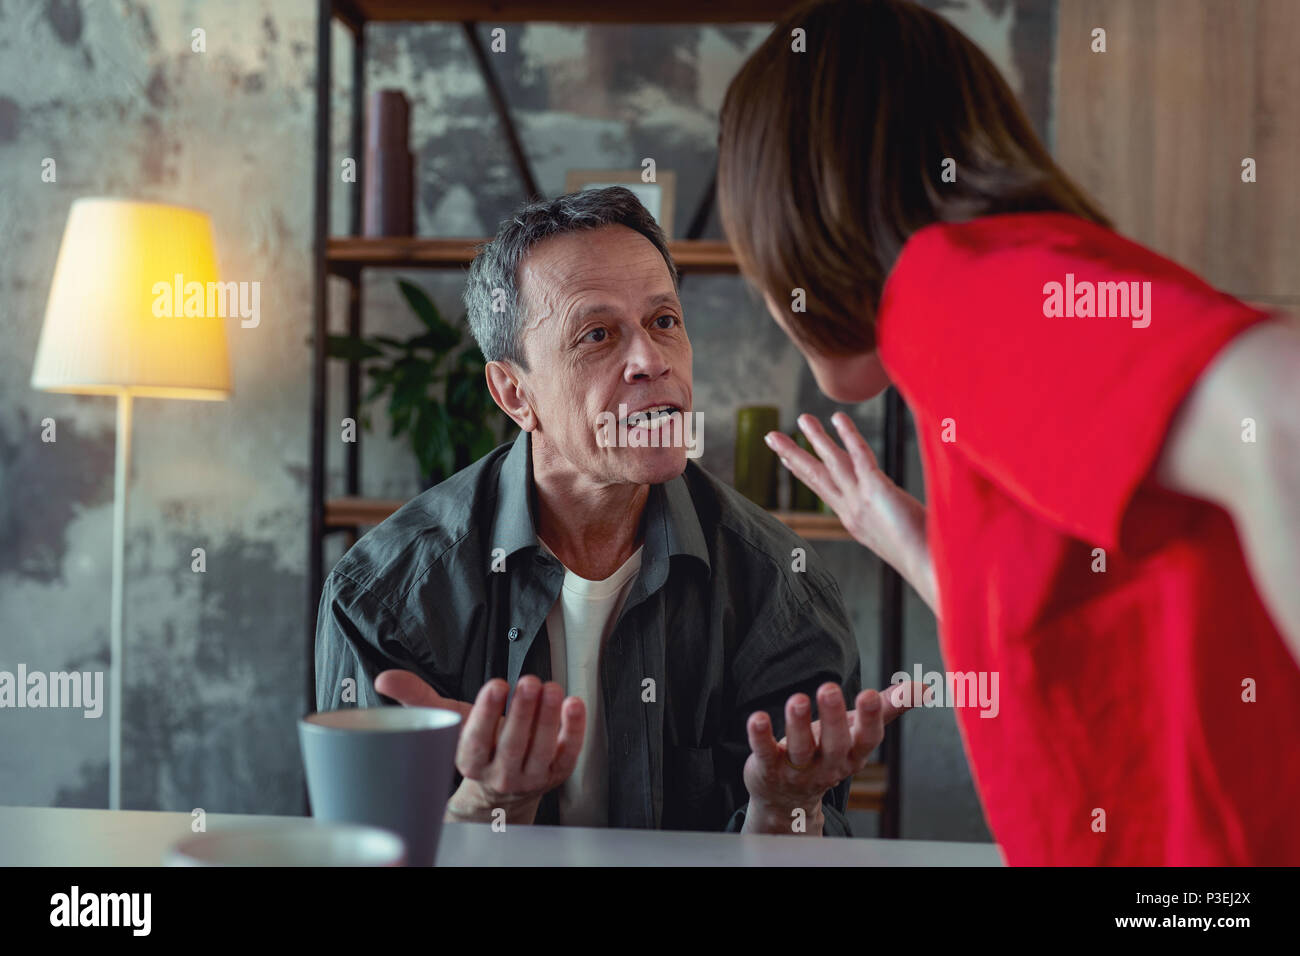 Angry man feeling fierce while shouting at his wife - Stock Image